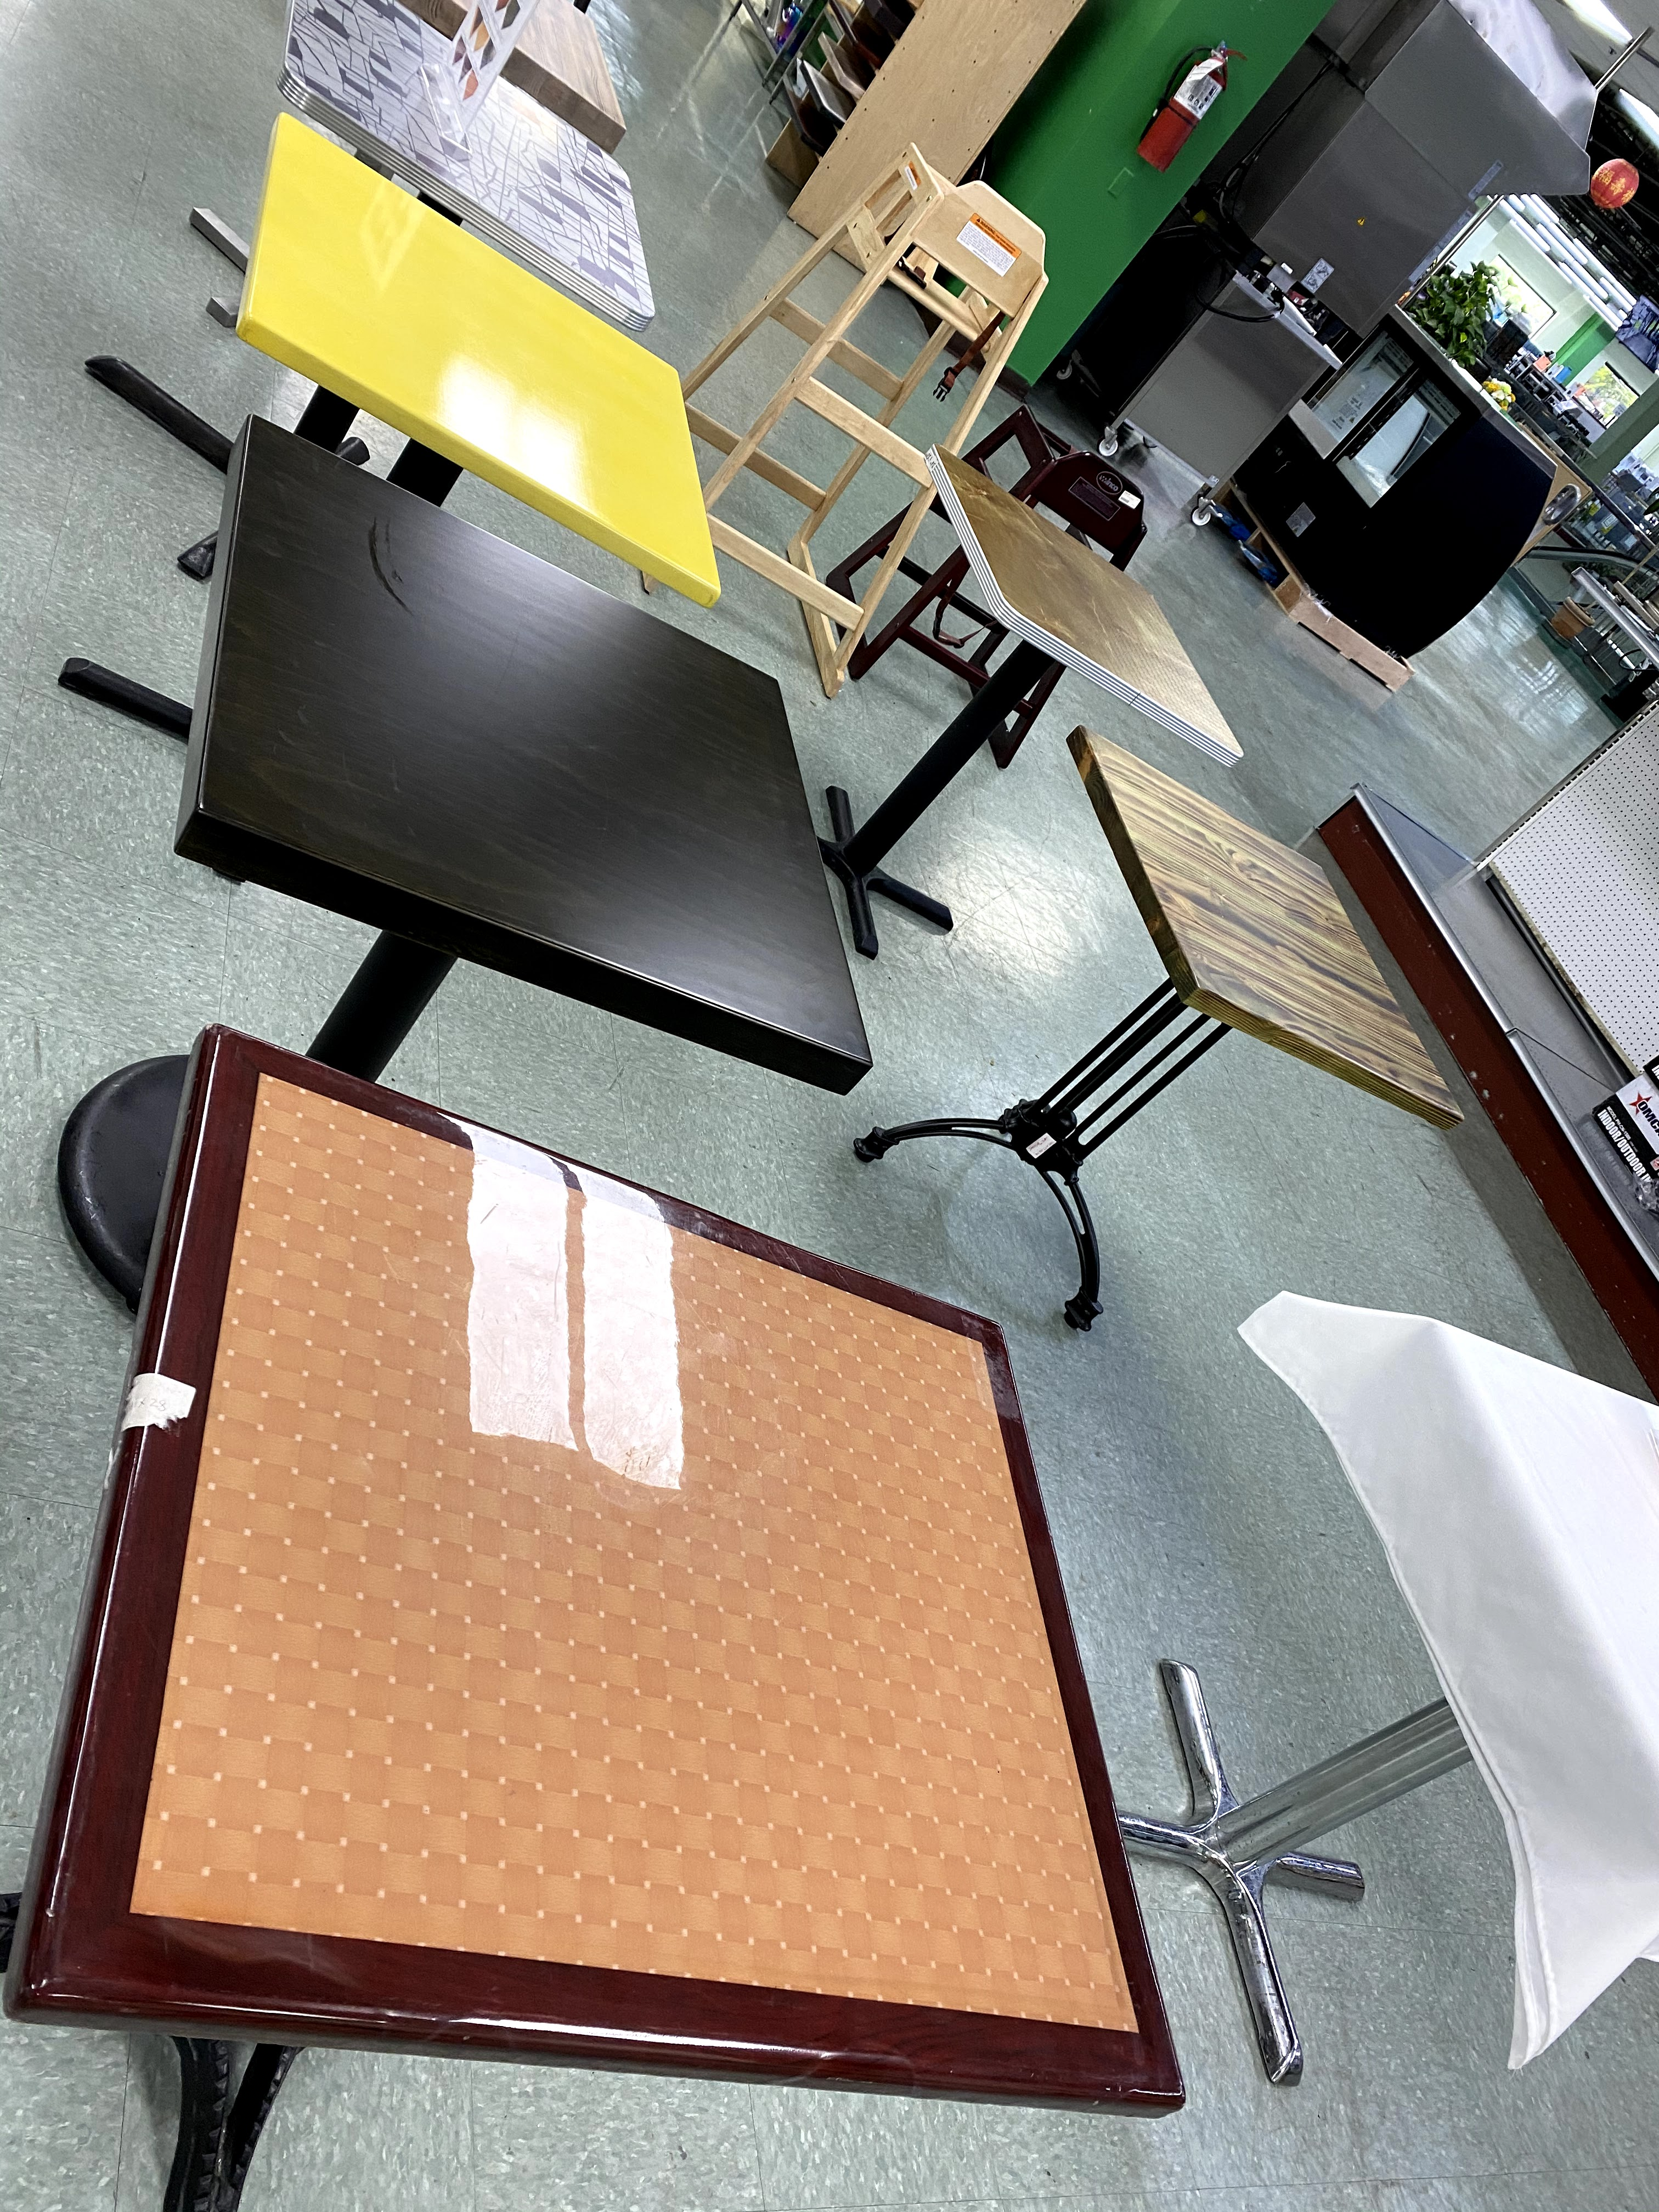 Shop restaurant tables and chairs at Win Depot.